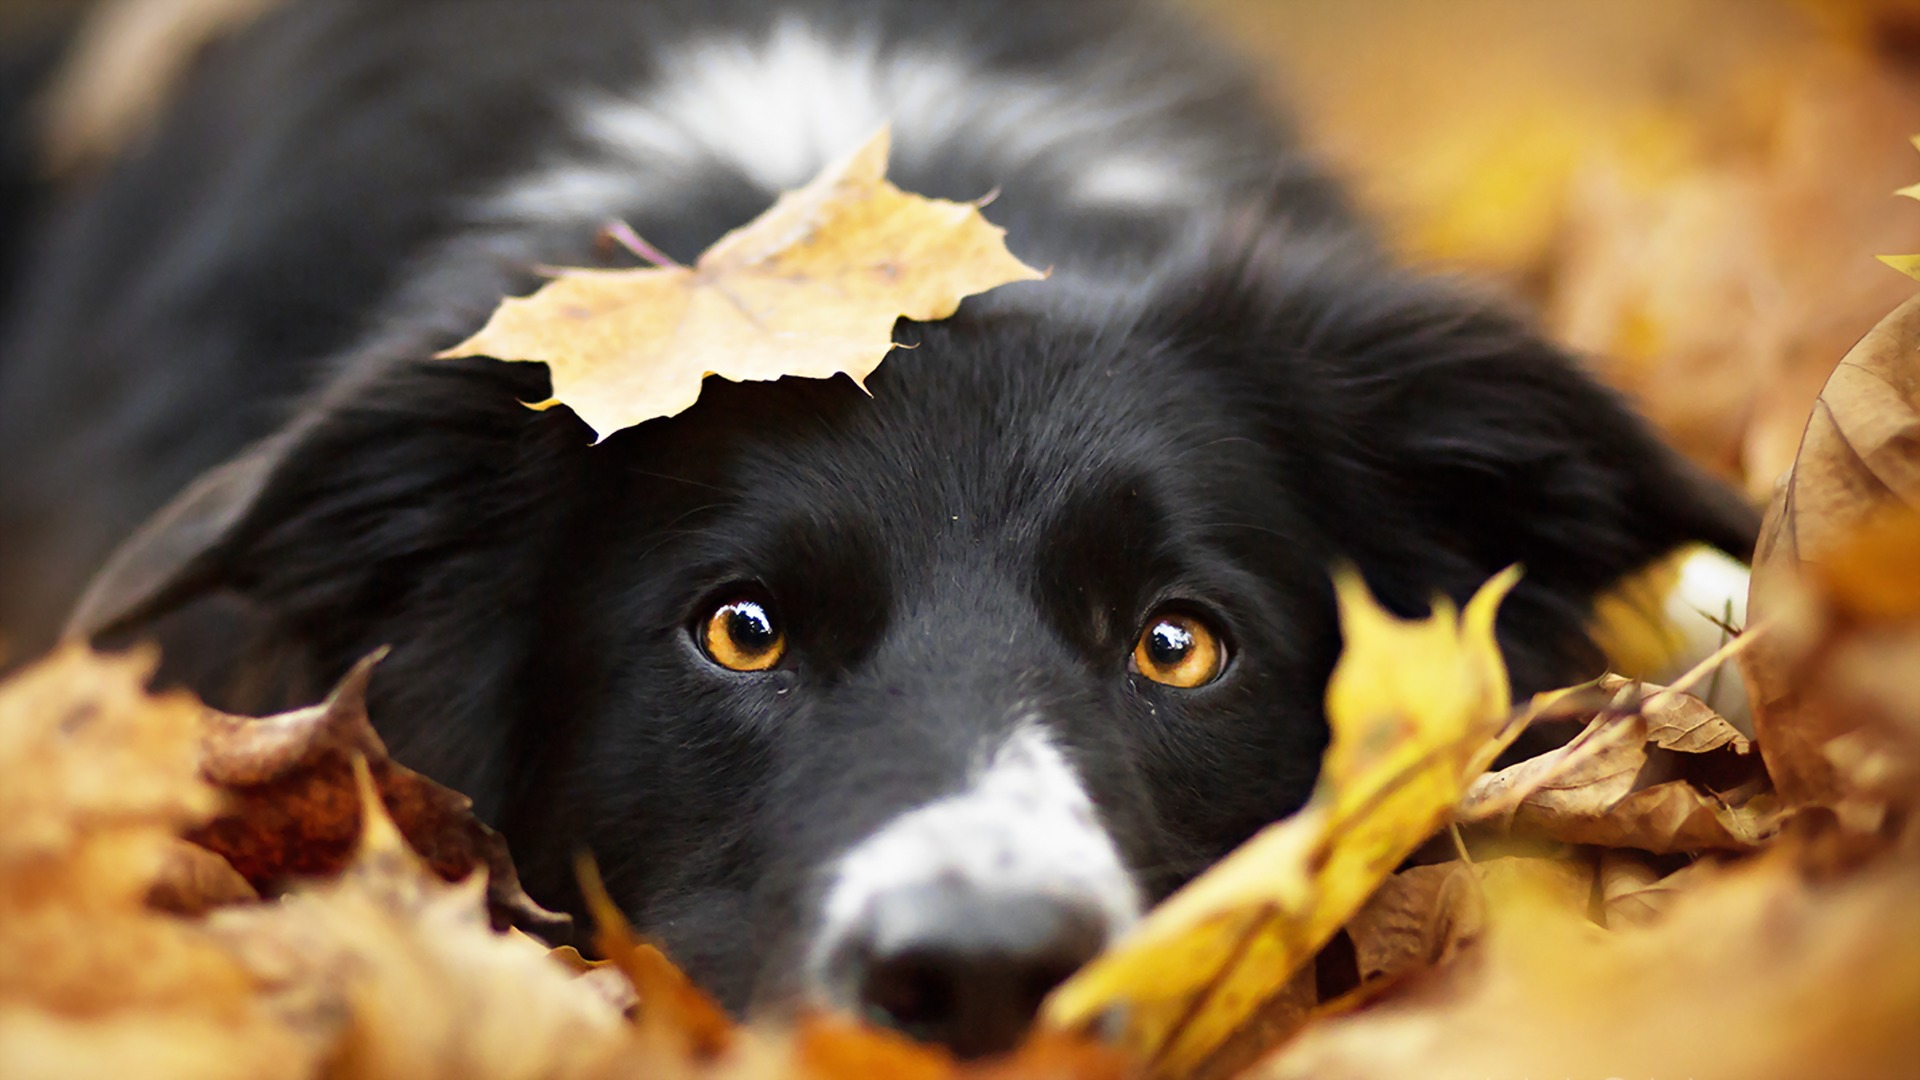 Images Border Collie Dogs Foliage Autumn Snout animal Closeup Staring dog Leaf Glance Animals